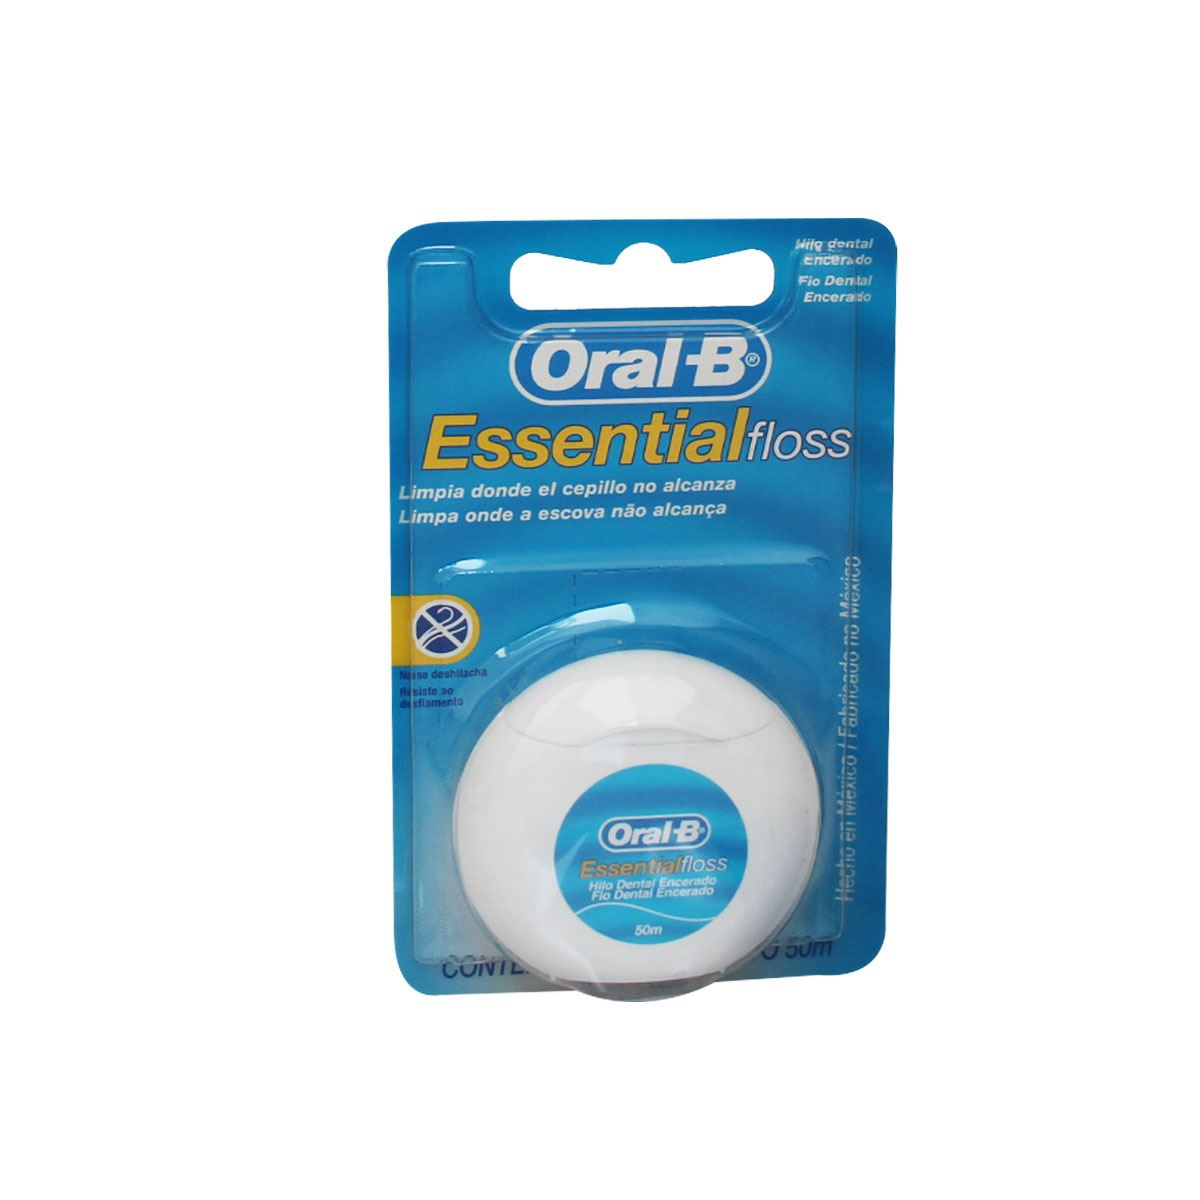 Hilo dental con cera oral-b  - Sanborns